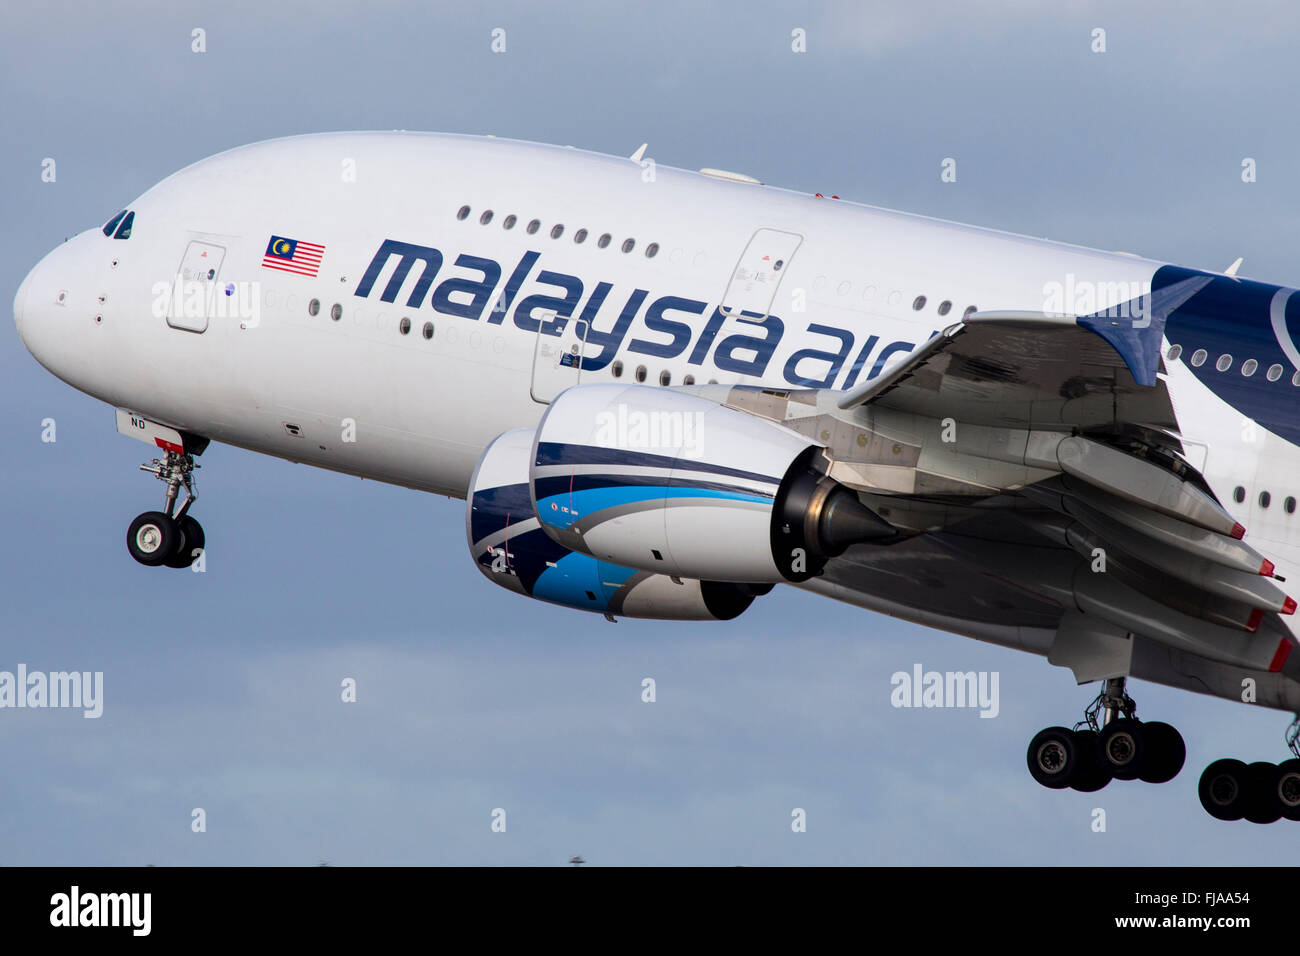 Malaysian Airlines Airbus A380 Aircraft - Stock Image